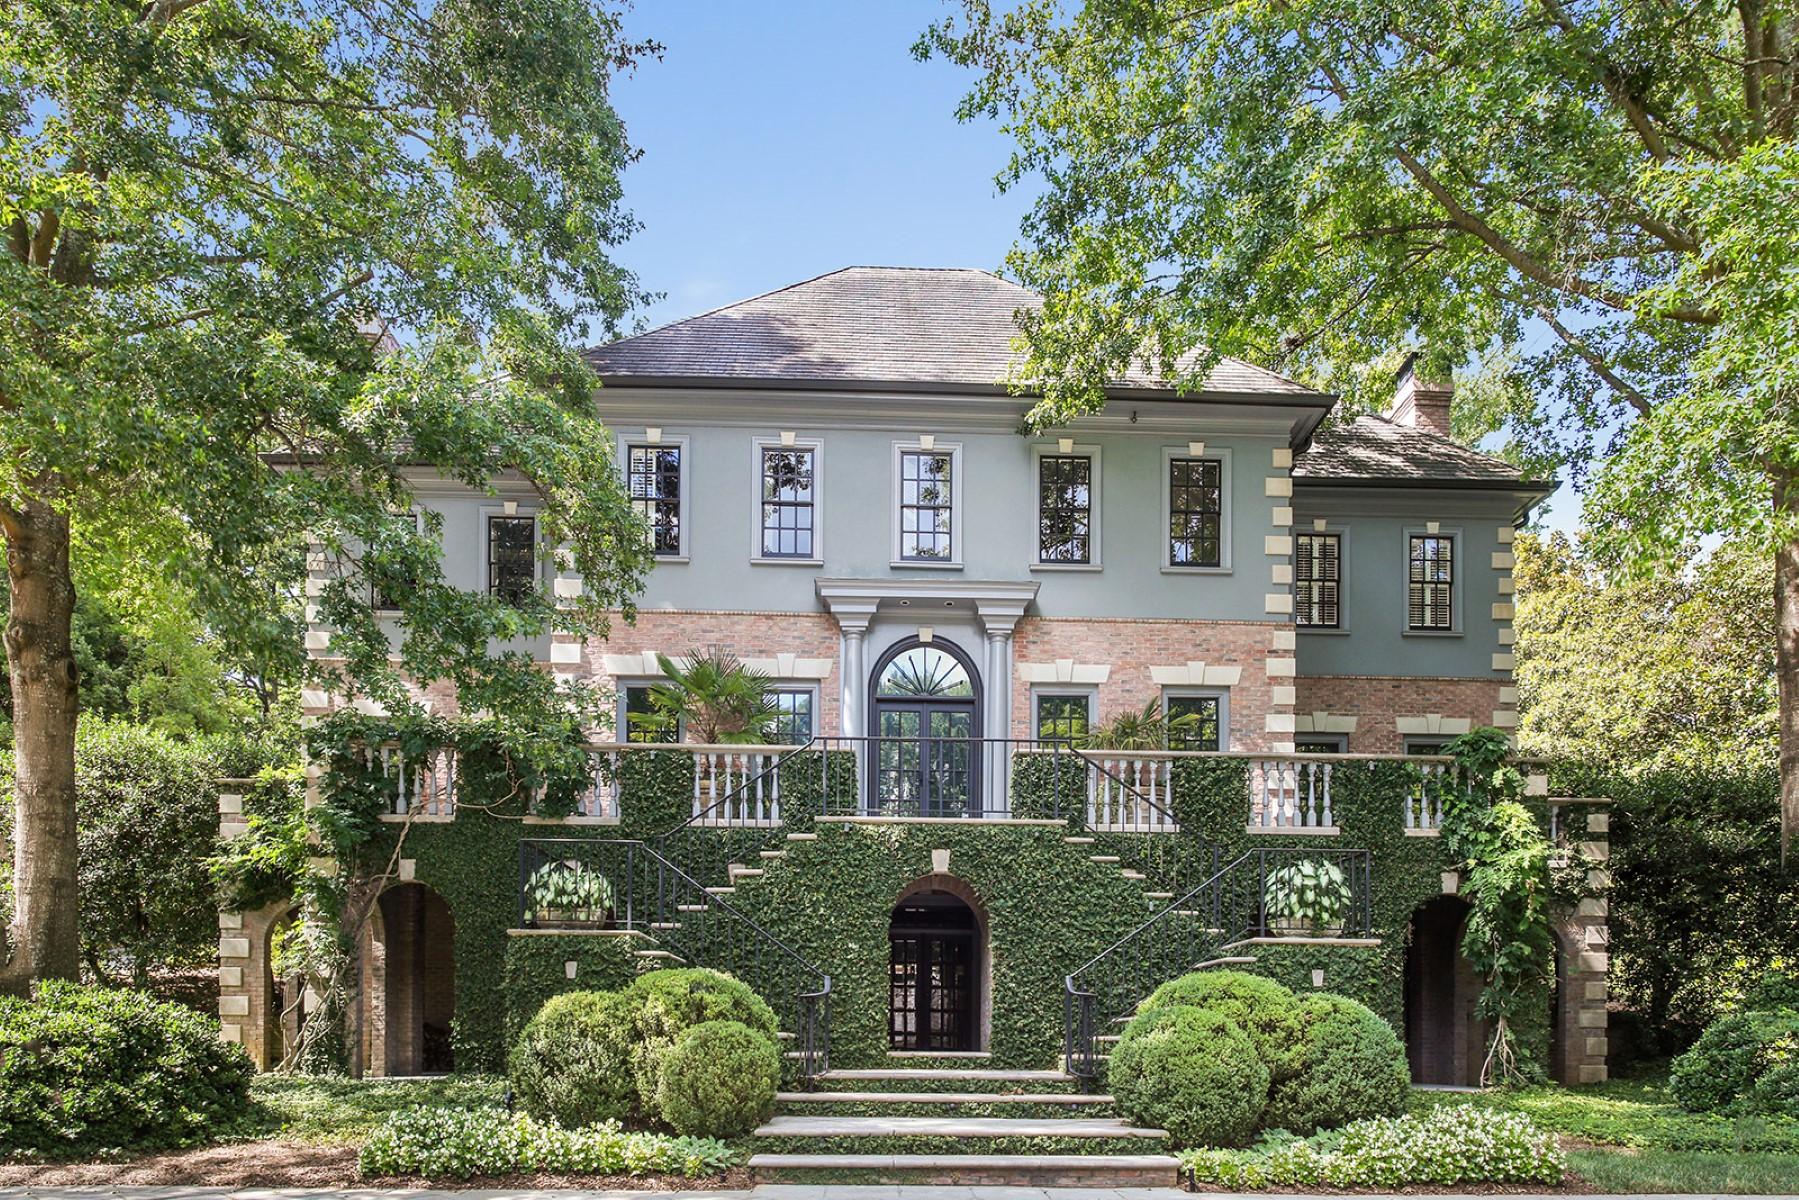 Vivienda unifamiliar por un Venta en Captivating Estate With Exquisite Detail Throughout 730 Conway Glen Drive NW Buckhead, Atlanta, Georgia, 30327 Estados Unidos